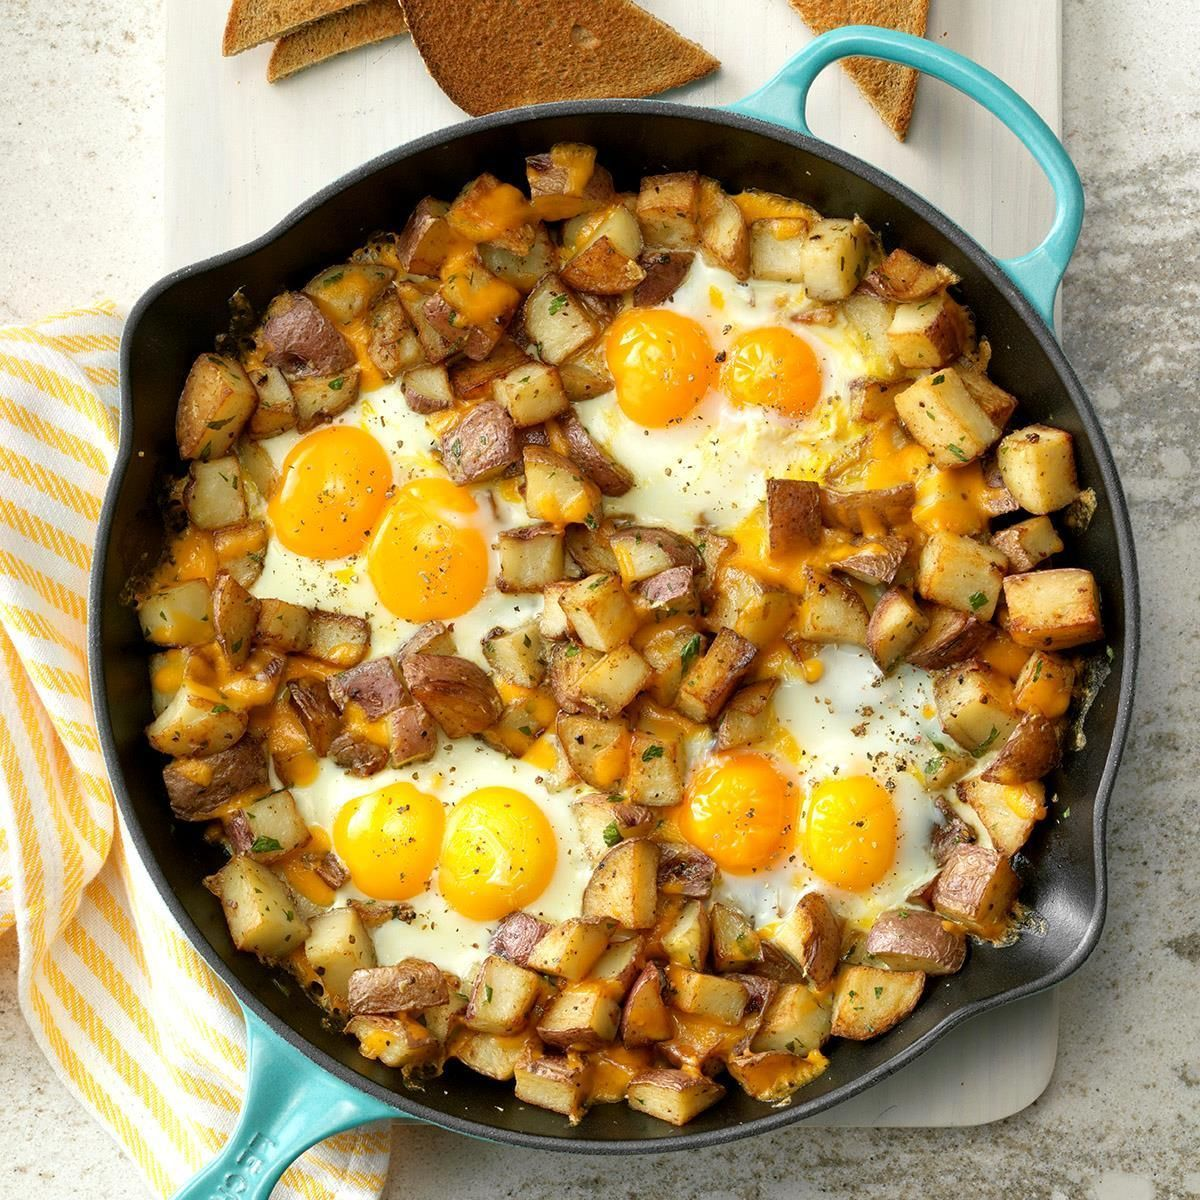 Photo of Baked cheddar eggs & potatoes